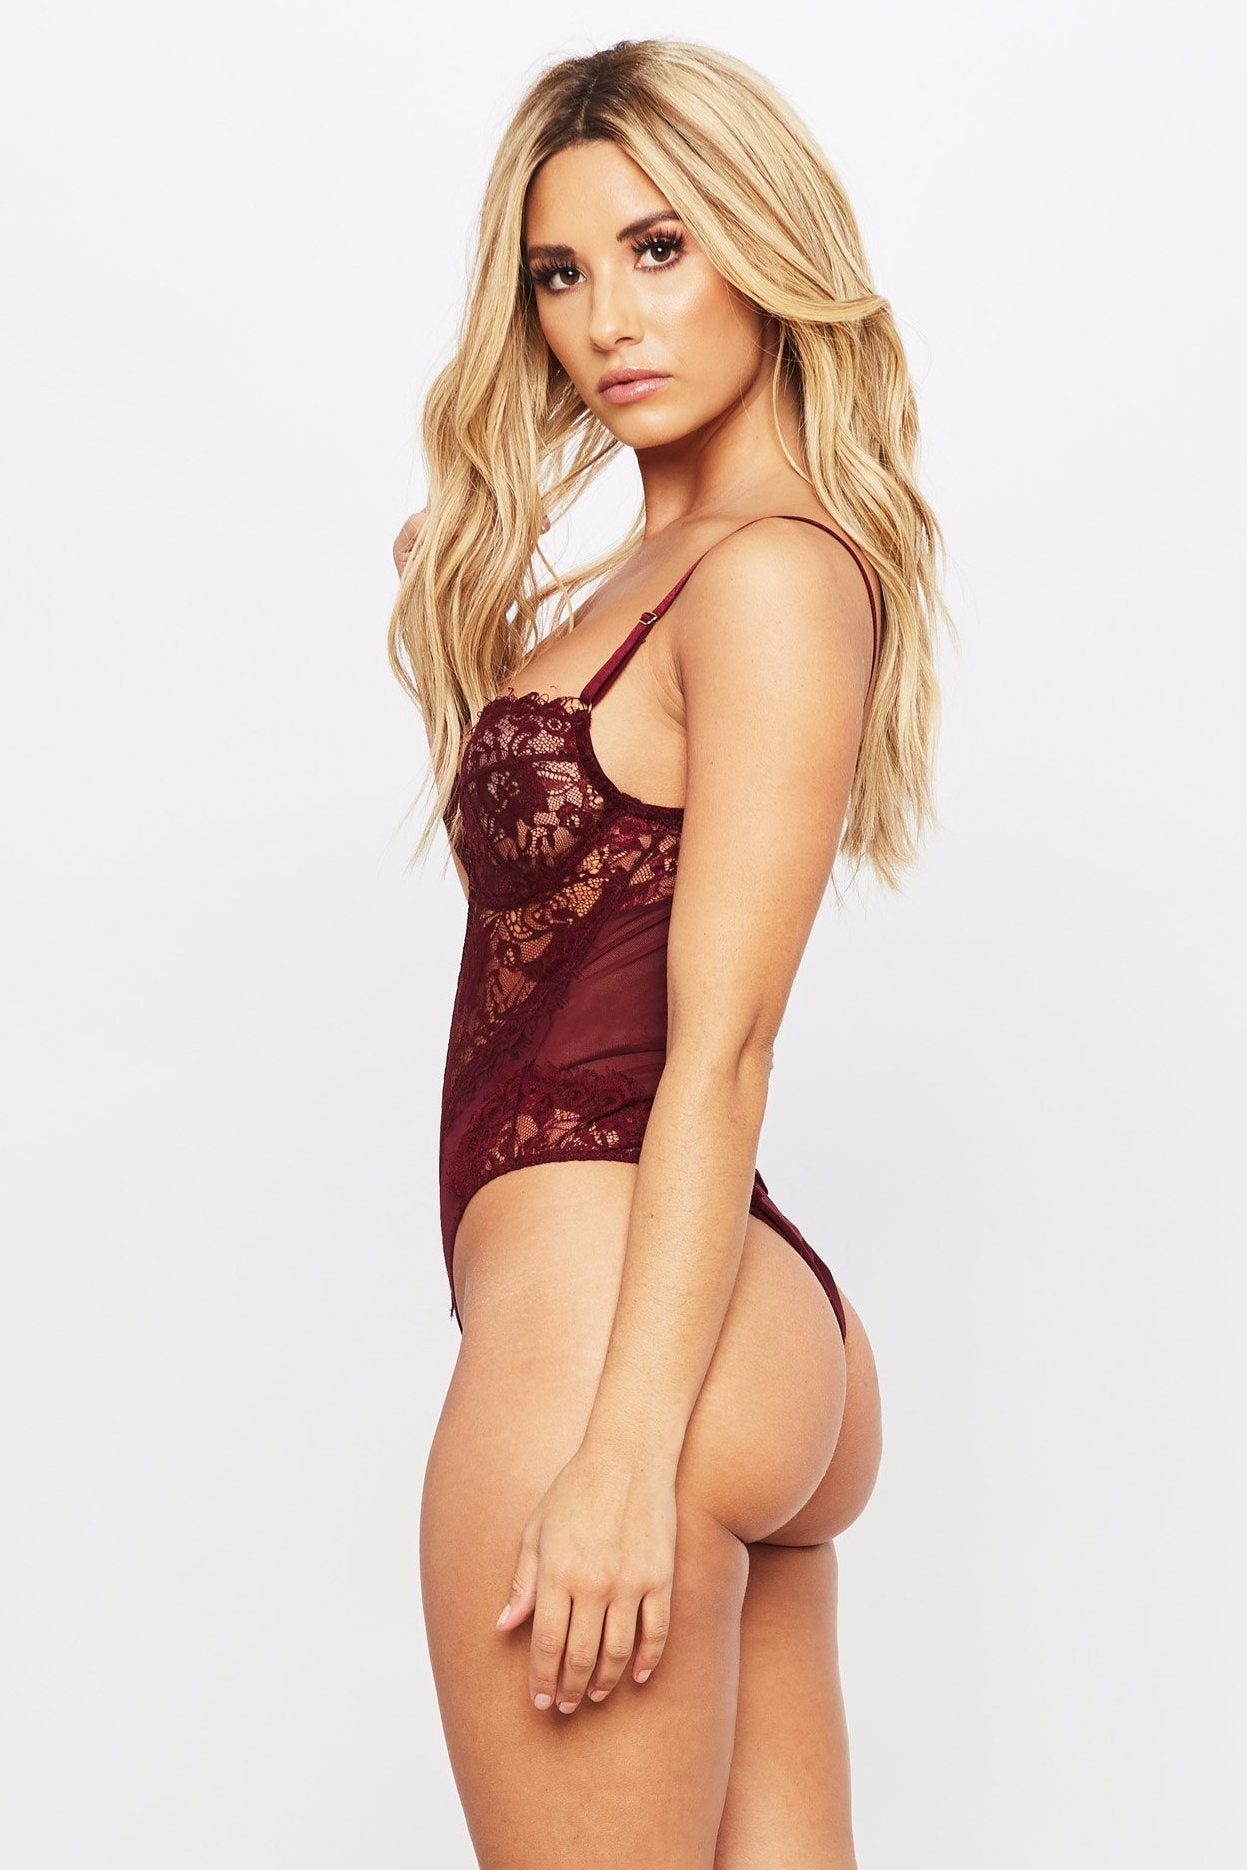 Strictly Lace Bodysuit - HoneyBum